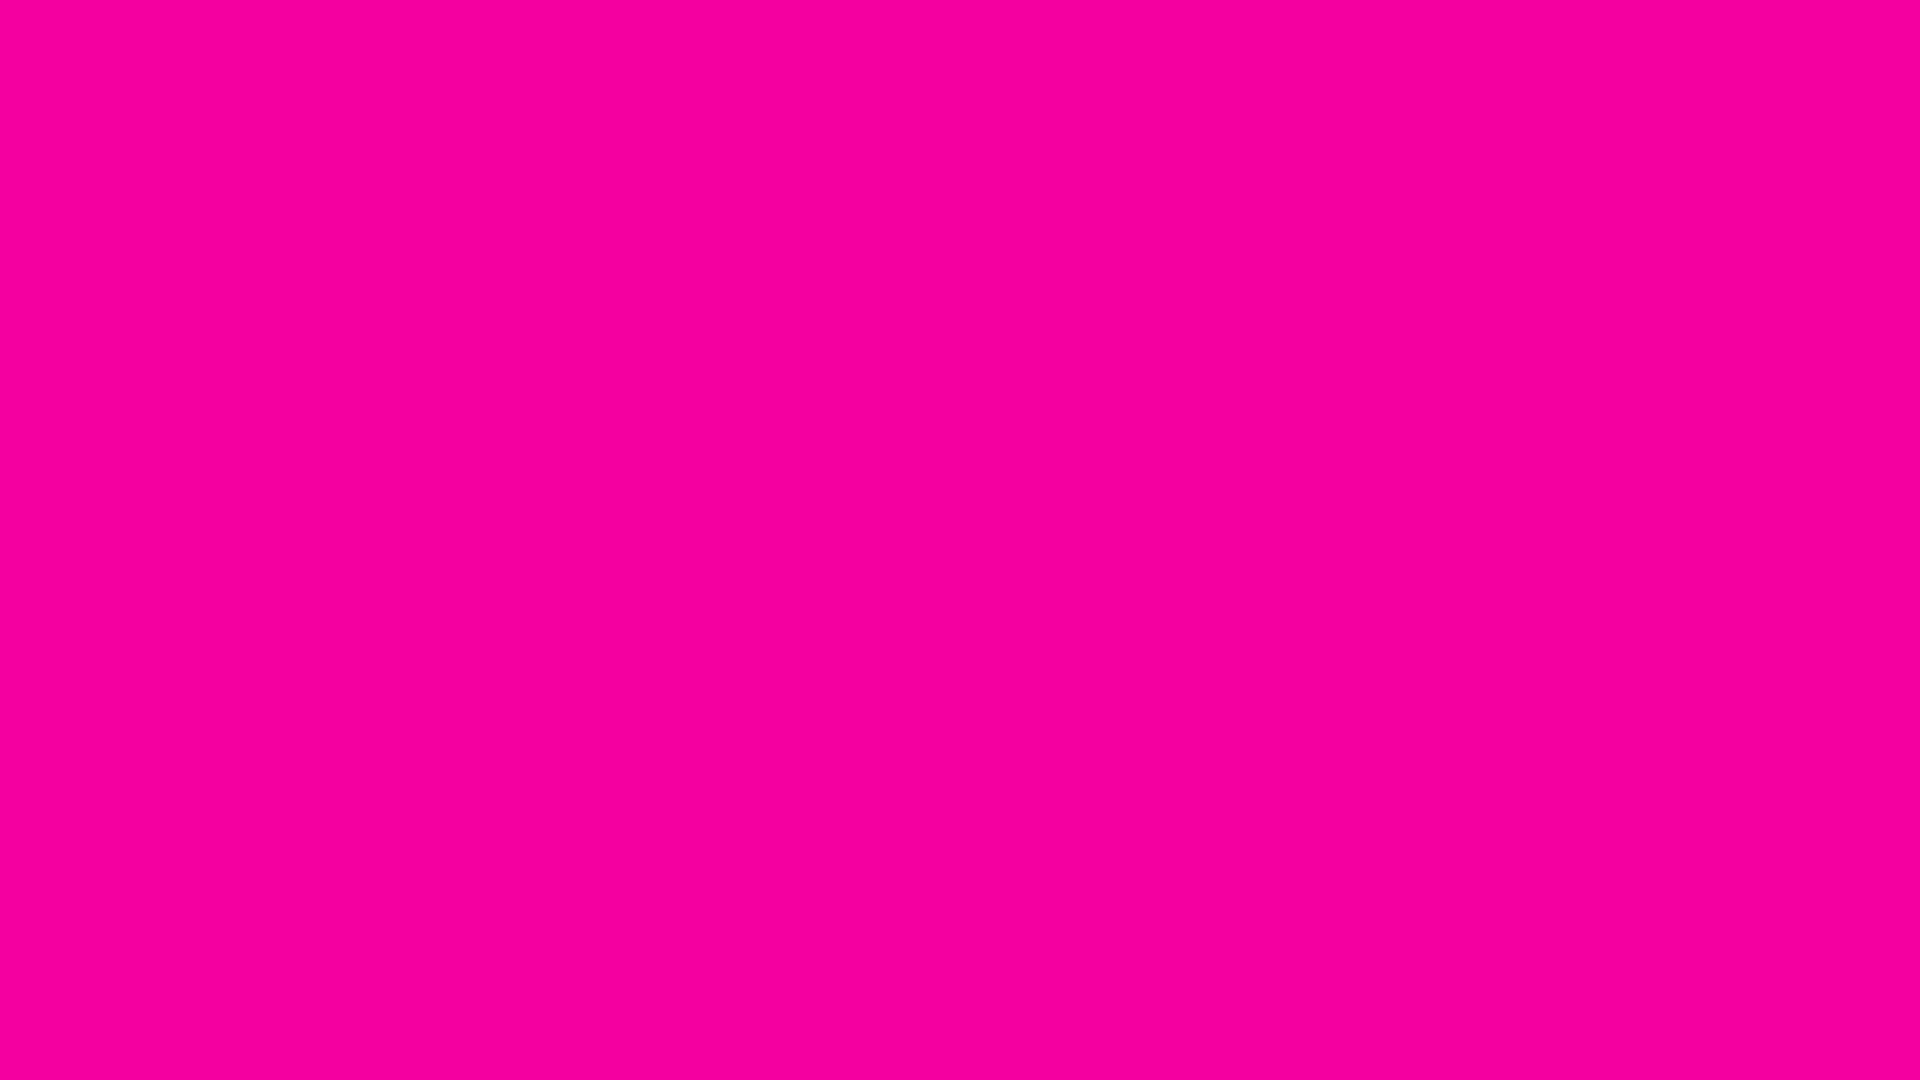 1920x1080 Hollywood Cerise Solid Color Background